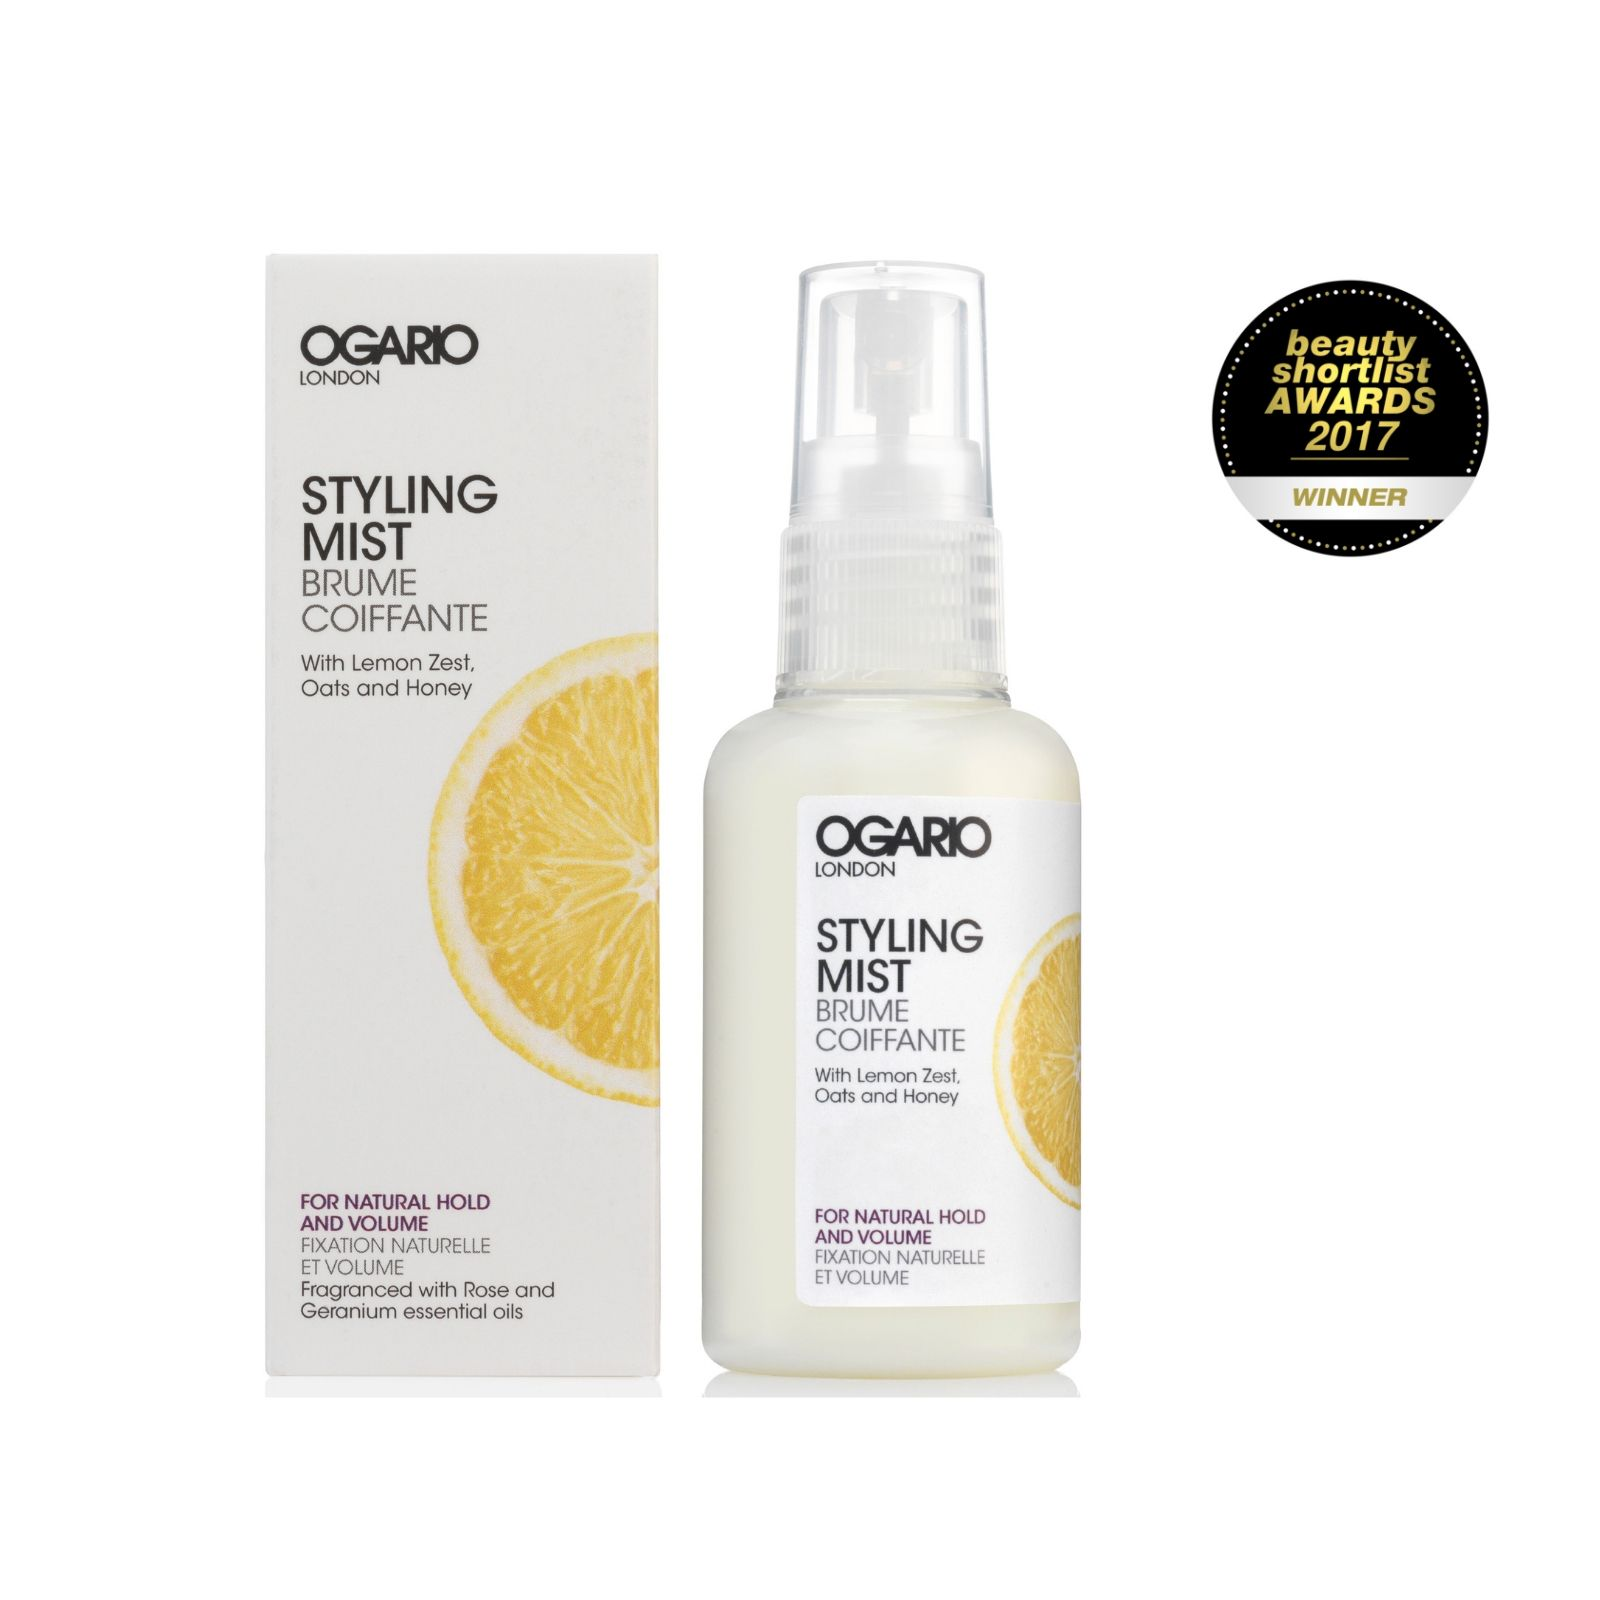 OGARIO Styling Mist for Natural Hold and Volume; For fine hair